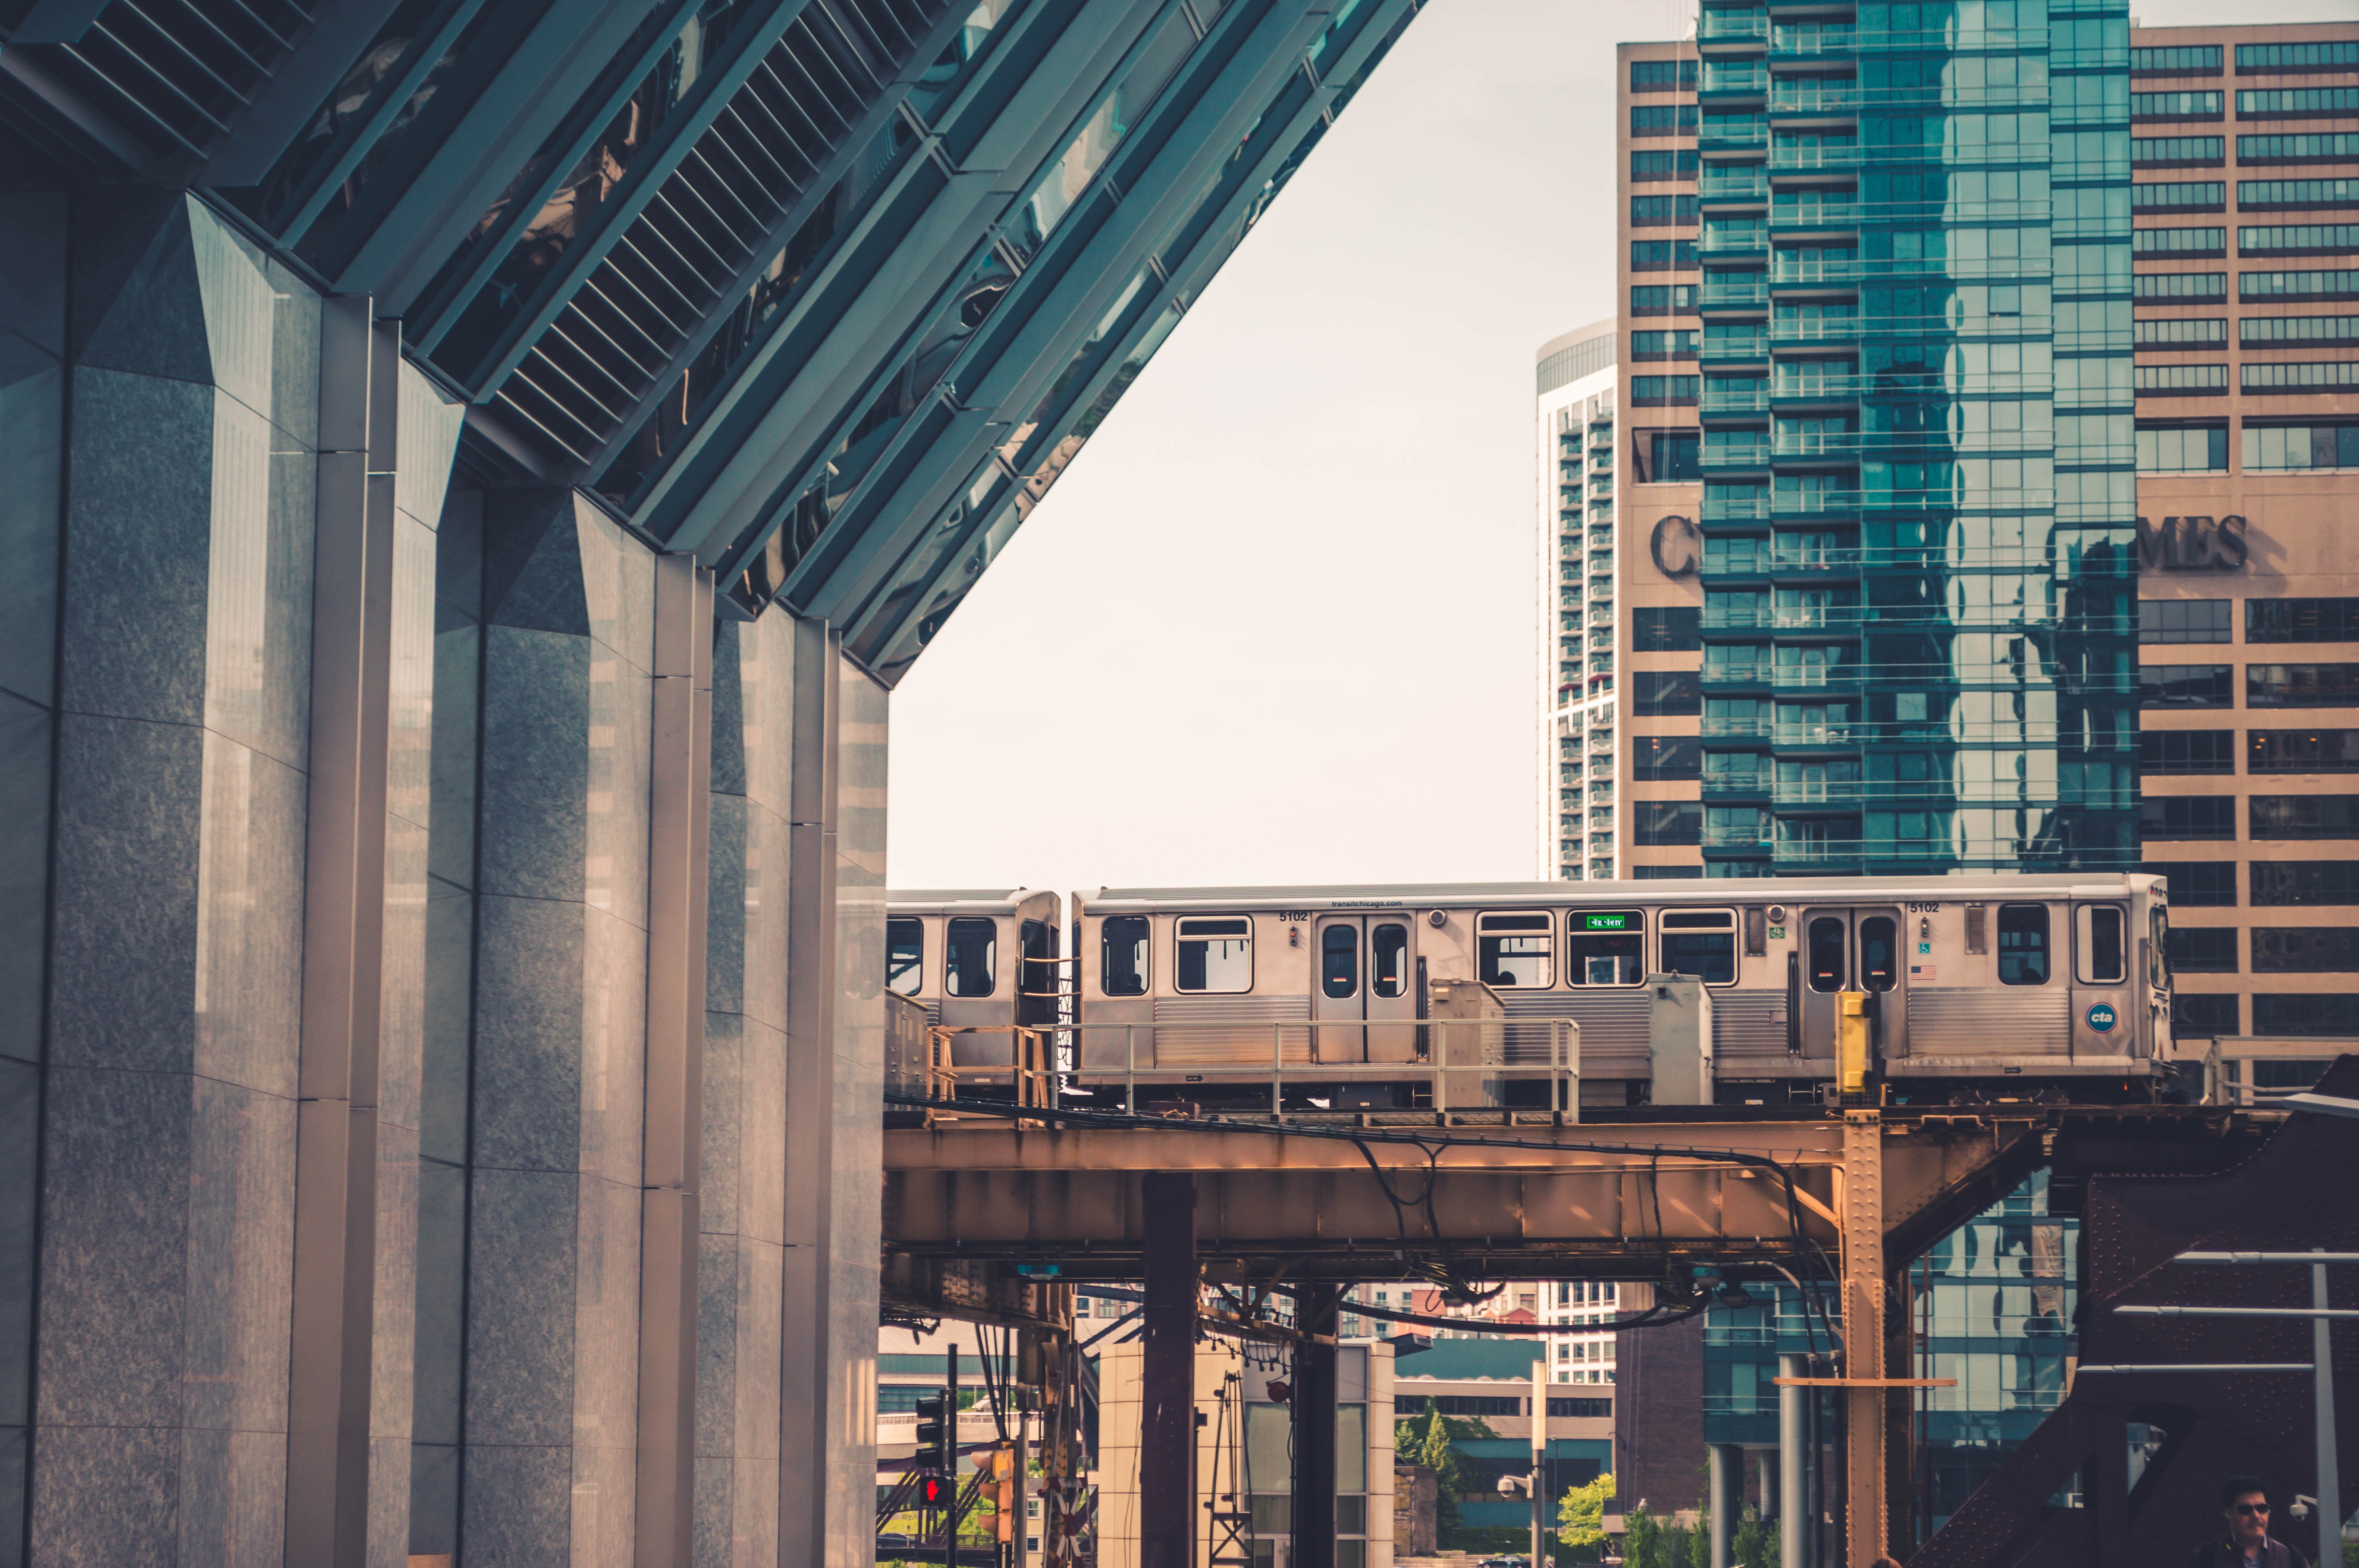 A commuter train on an overpass in Chicago